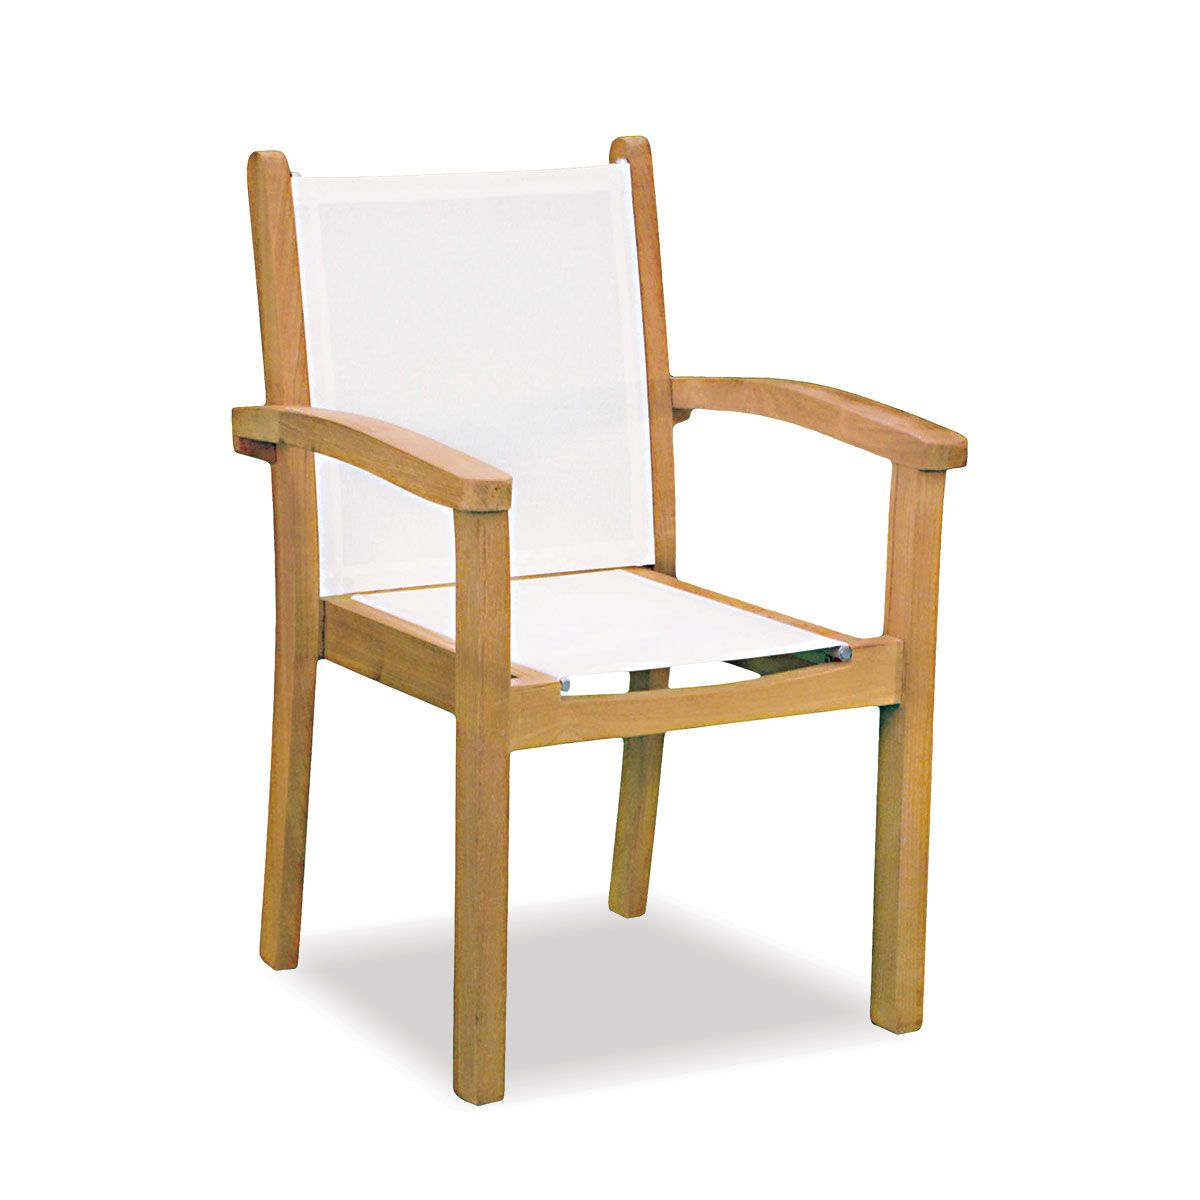 outdoor sling chairs. Teak Stacking Chair With Outdoor Sling | Seneca Collection Chairs